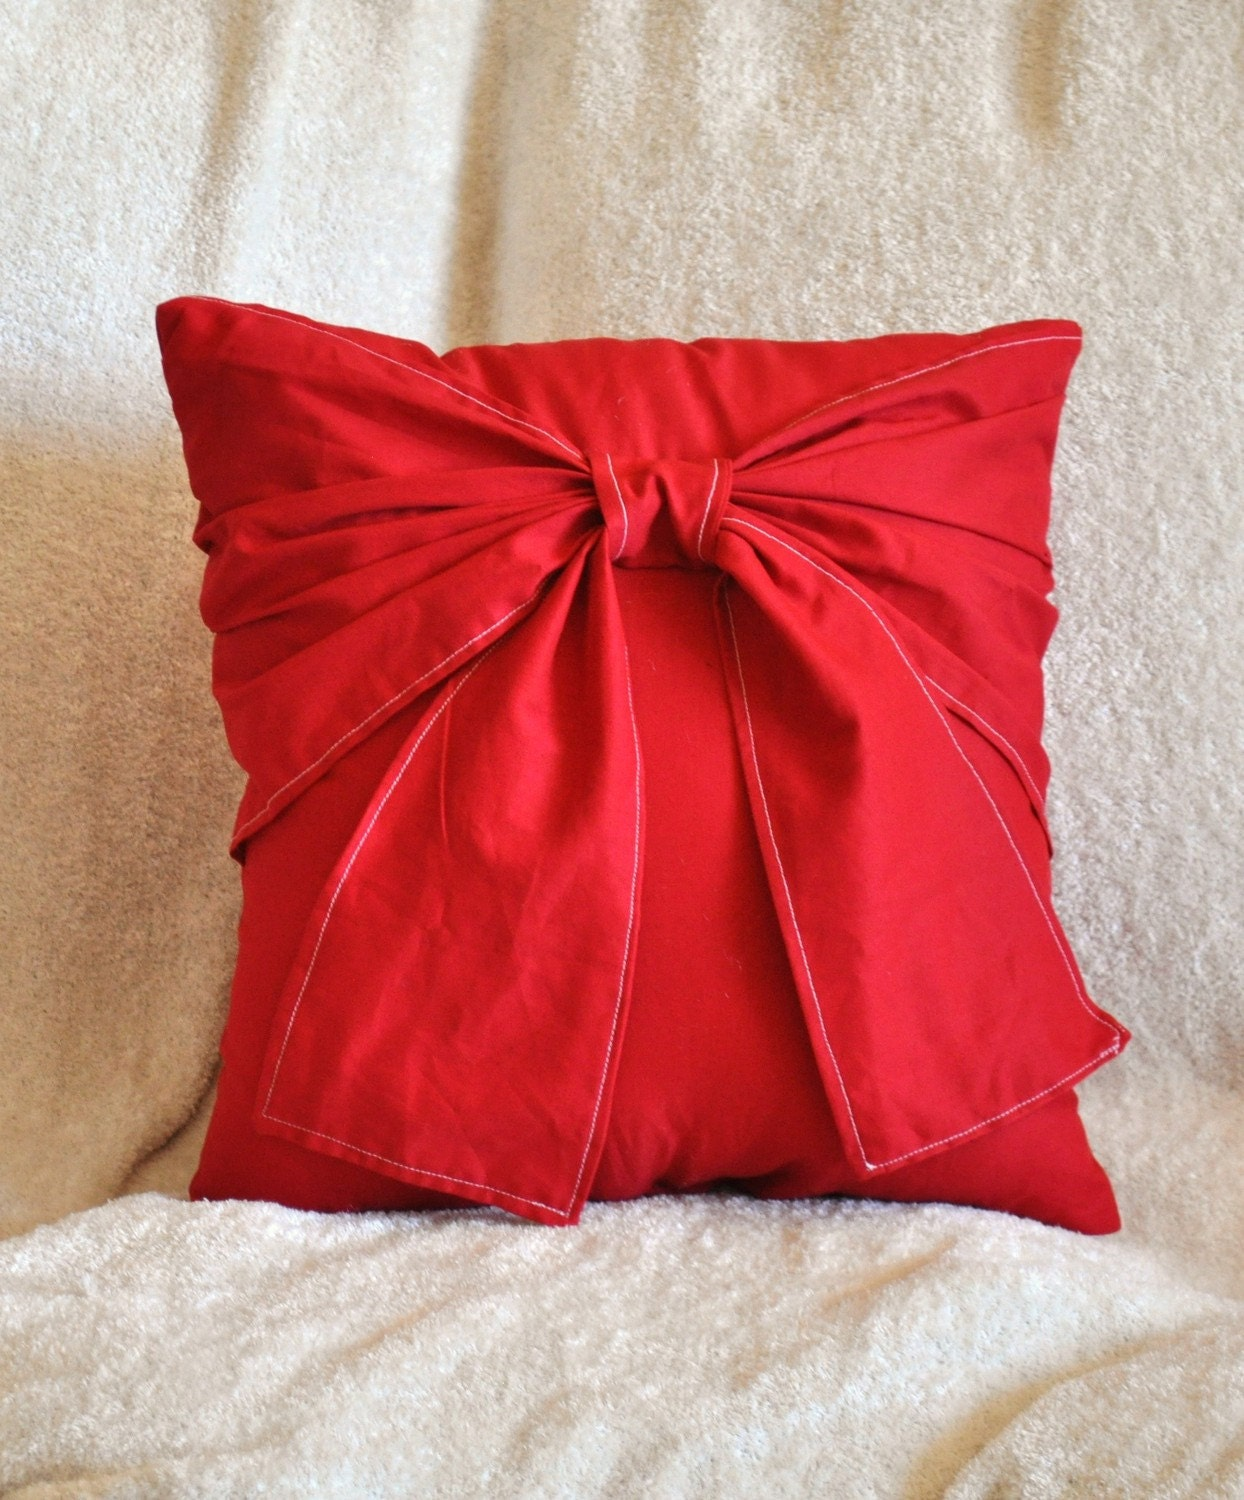 Big Red Throw Pillows : Red Decorative Pillow Big Bow Pillow 14x14 Choose Your Color